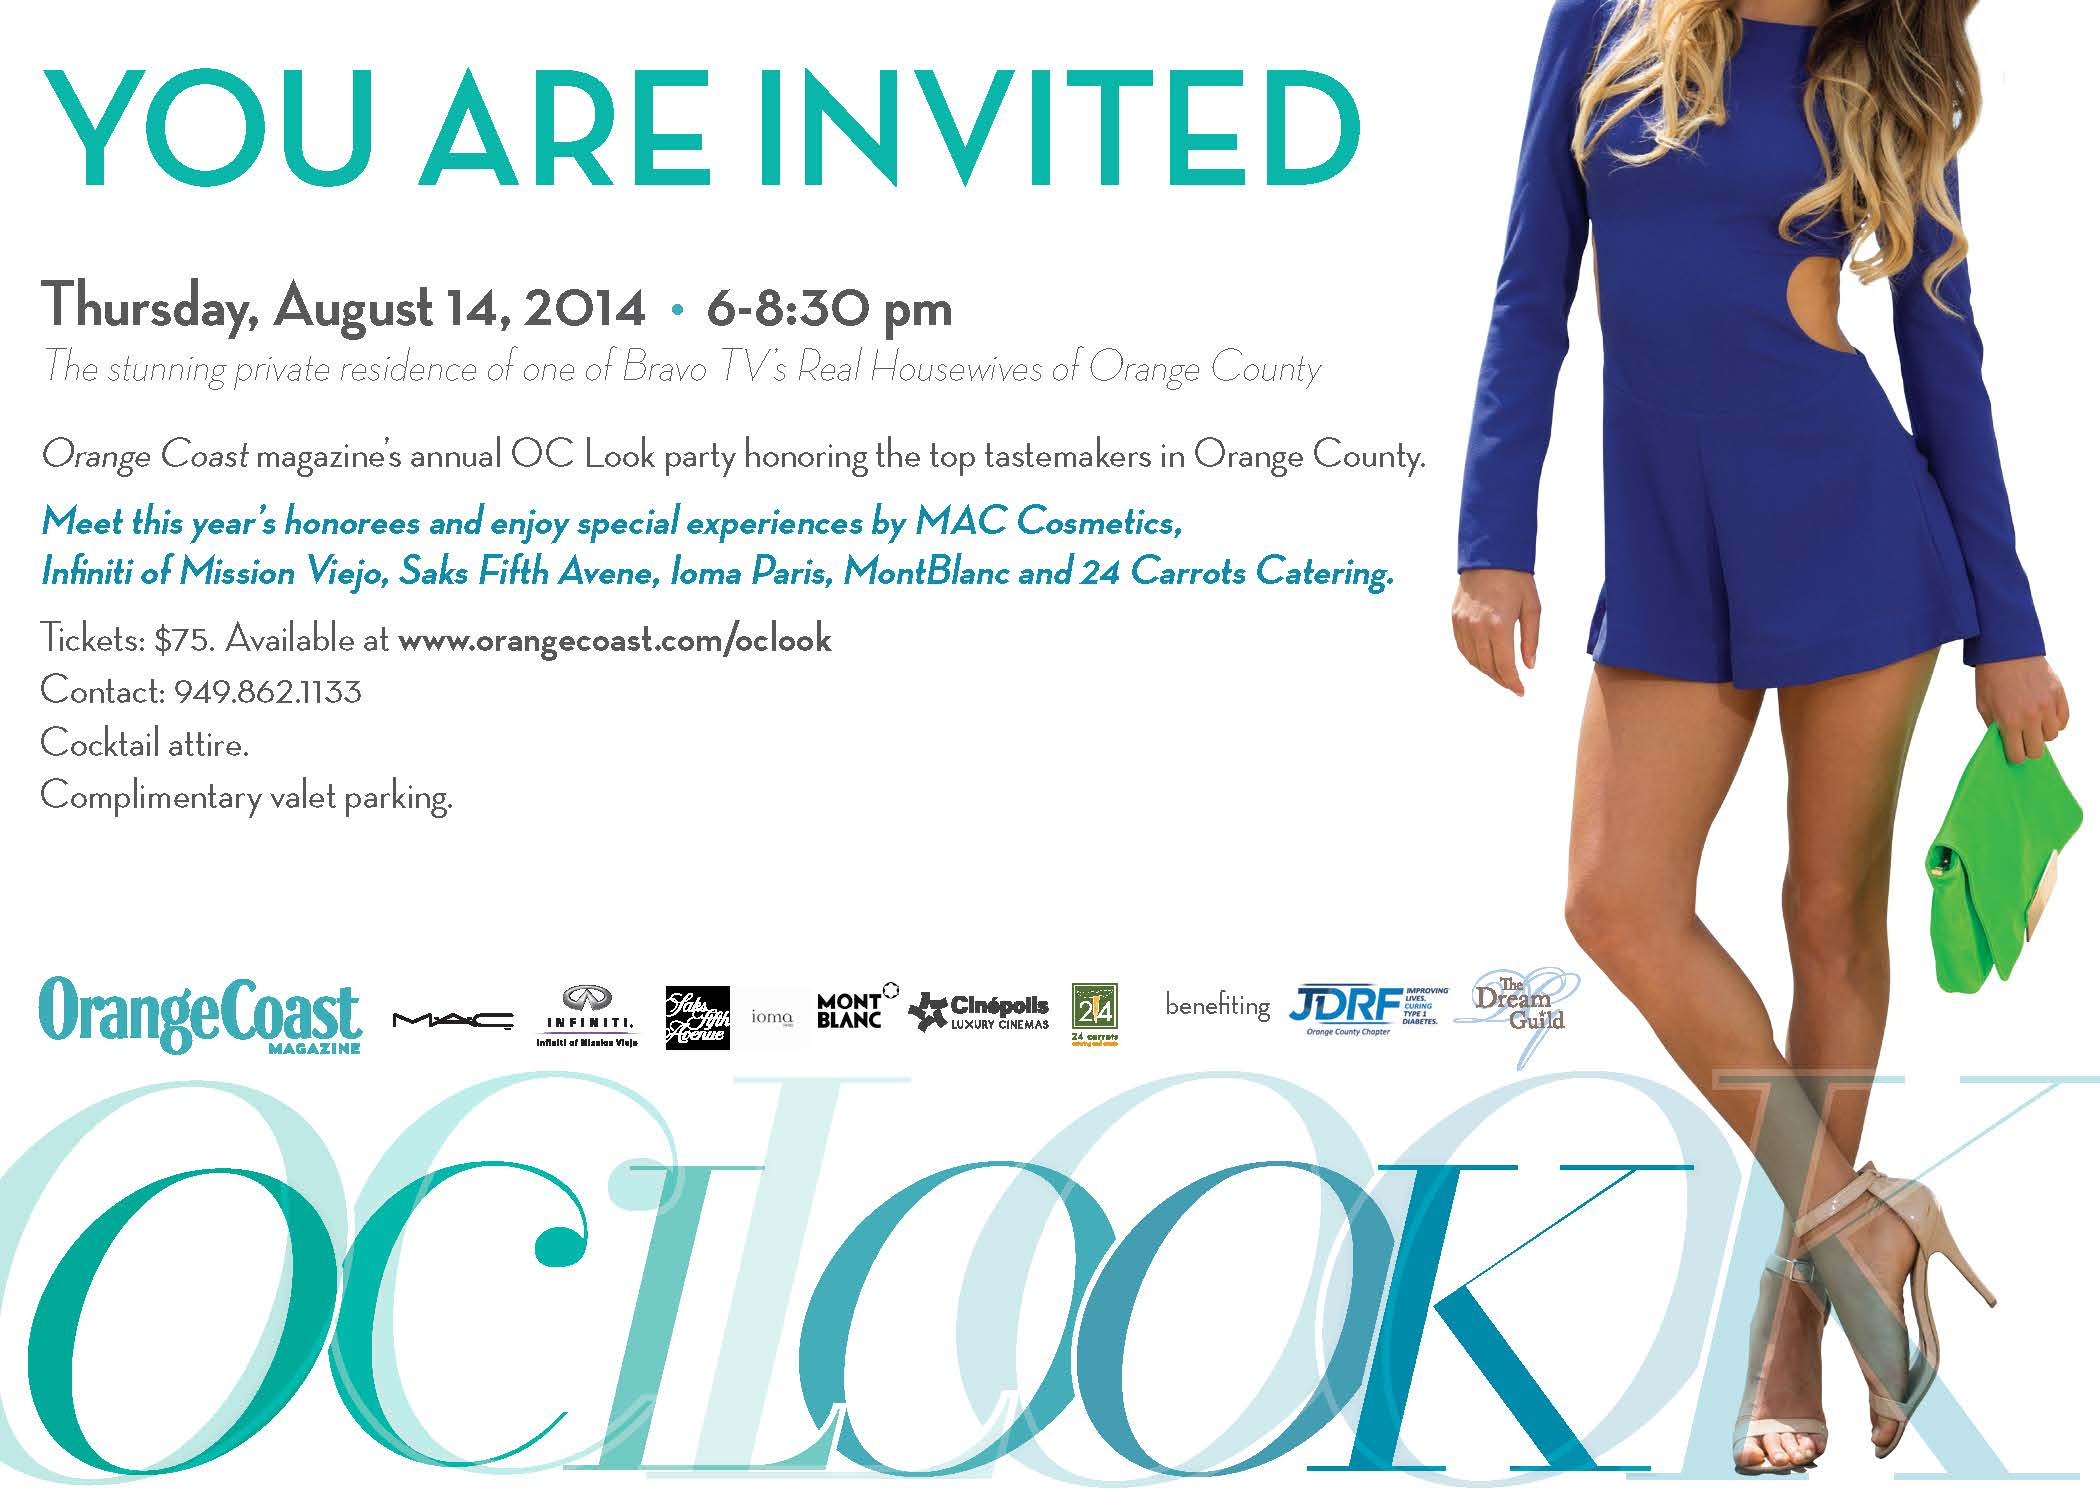 OC Look 2014 Save the Date